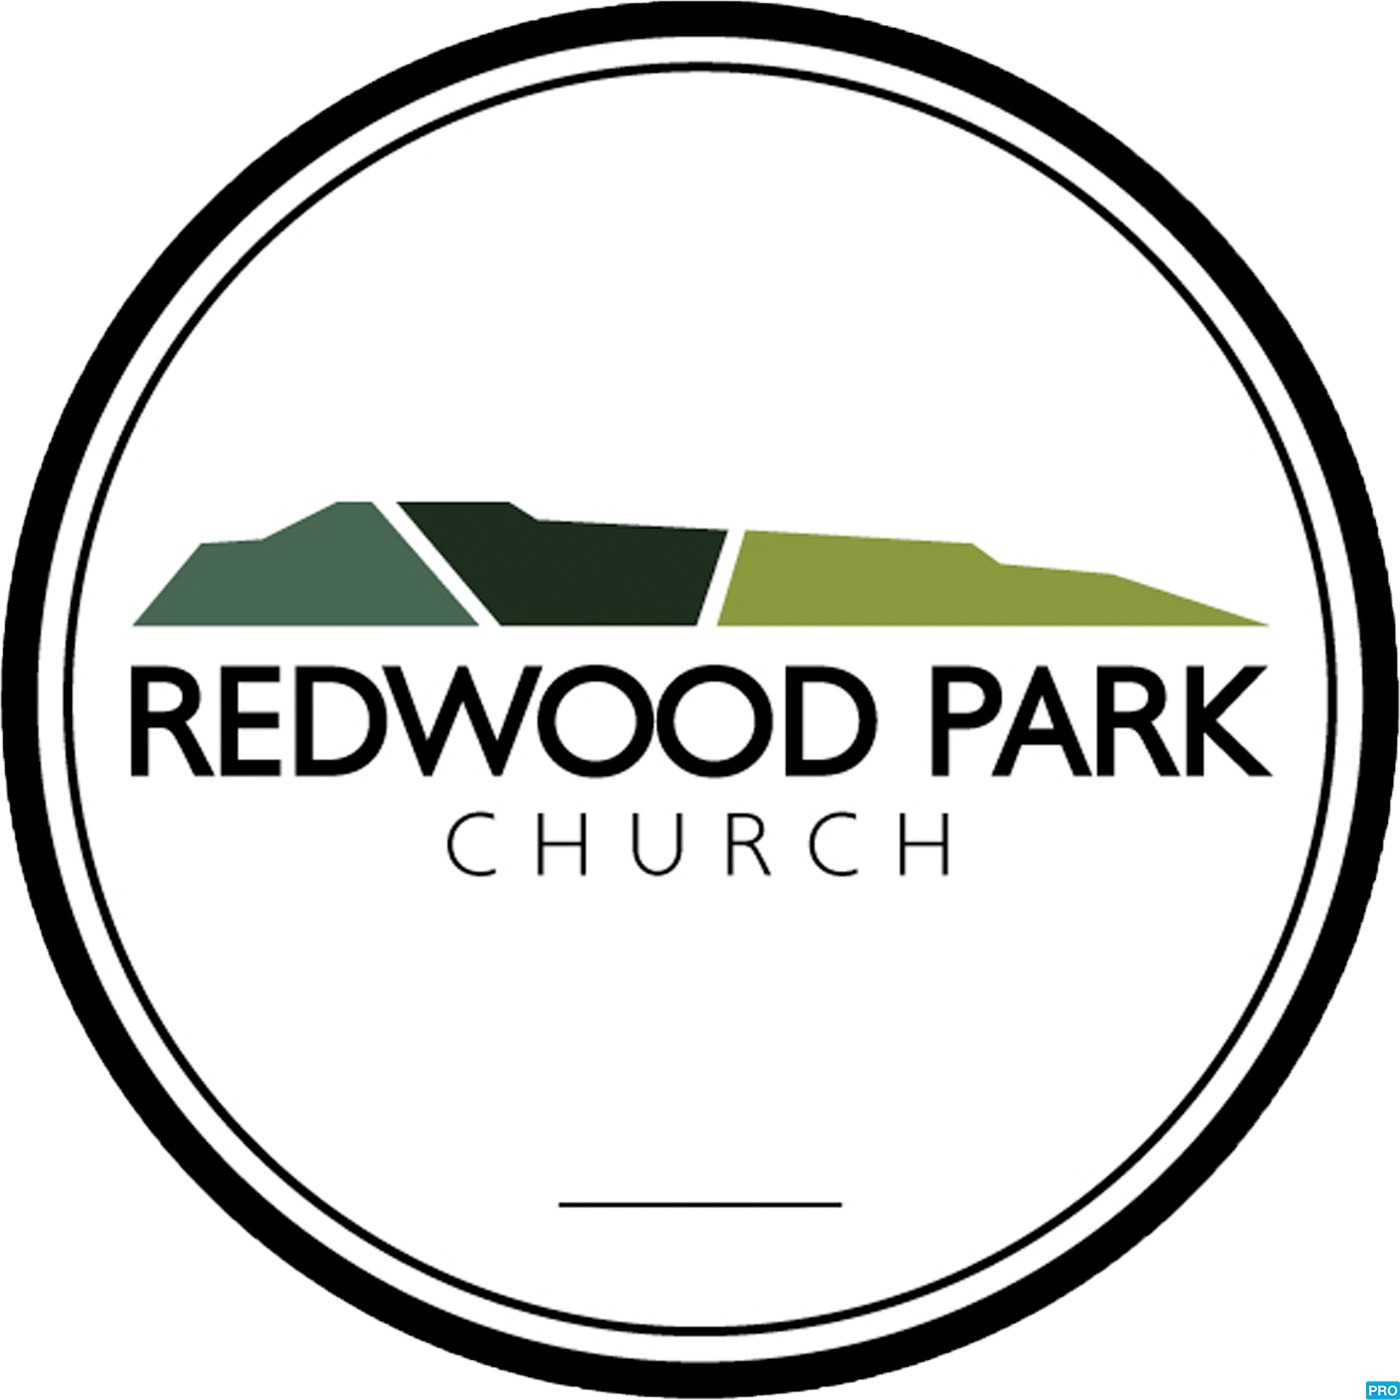 Redwood Park Church